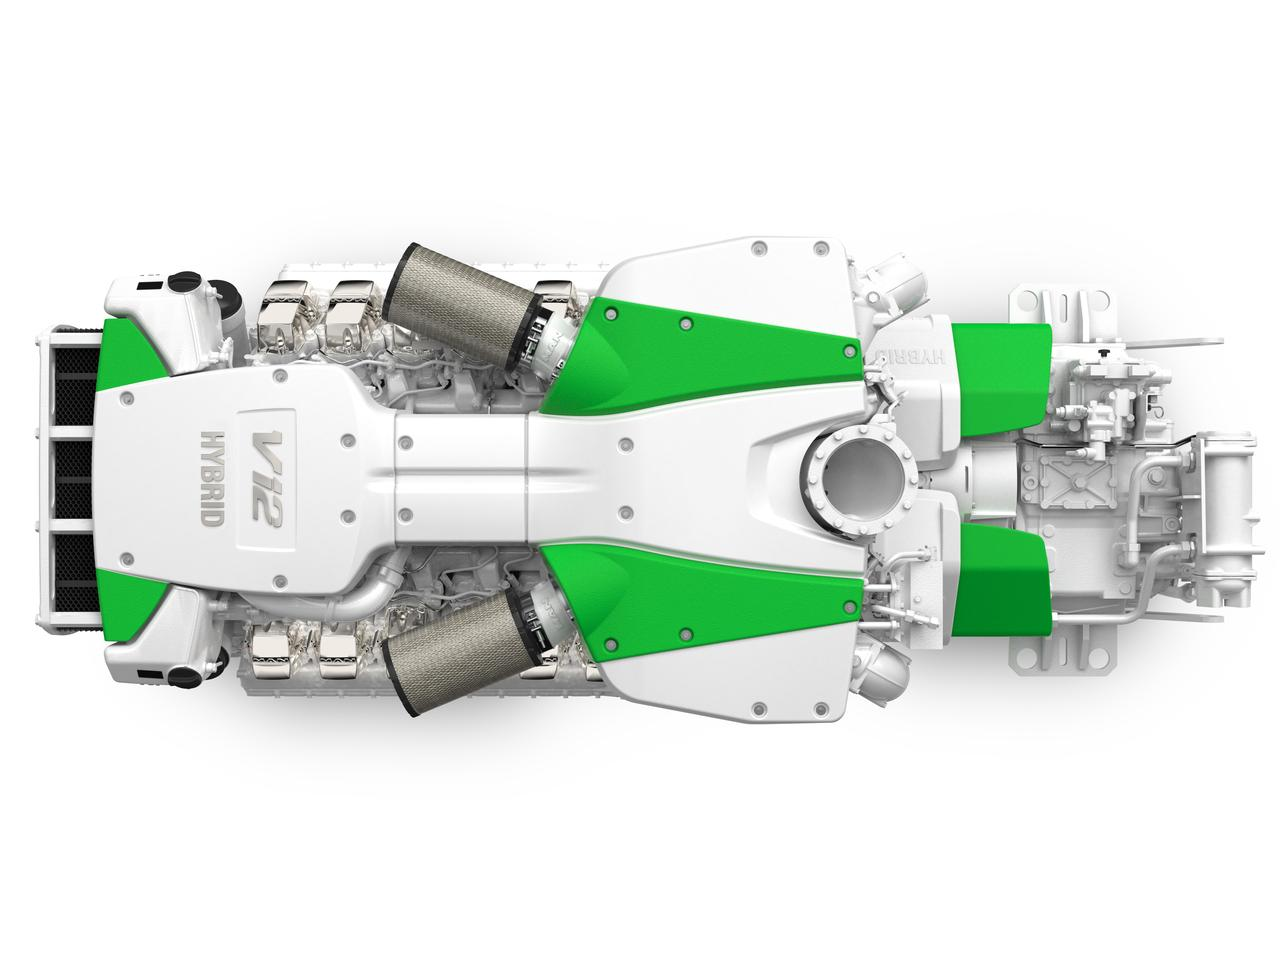 MAN will work with customers to create tailor-built hybrid marine drives